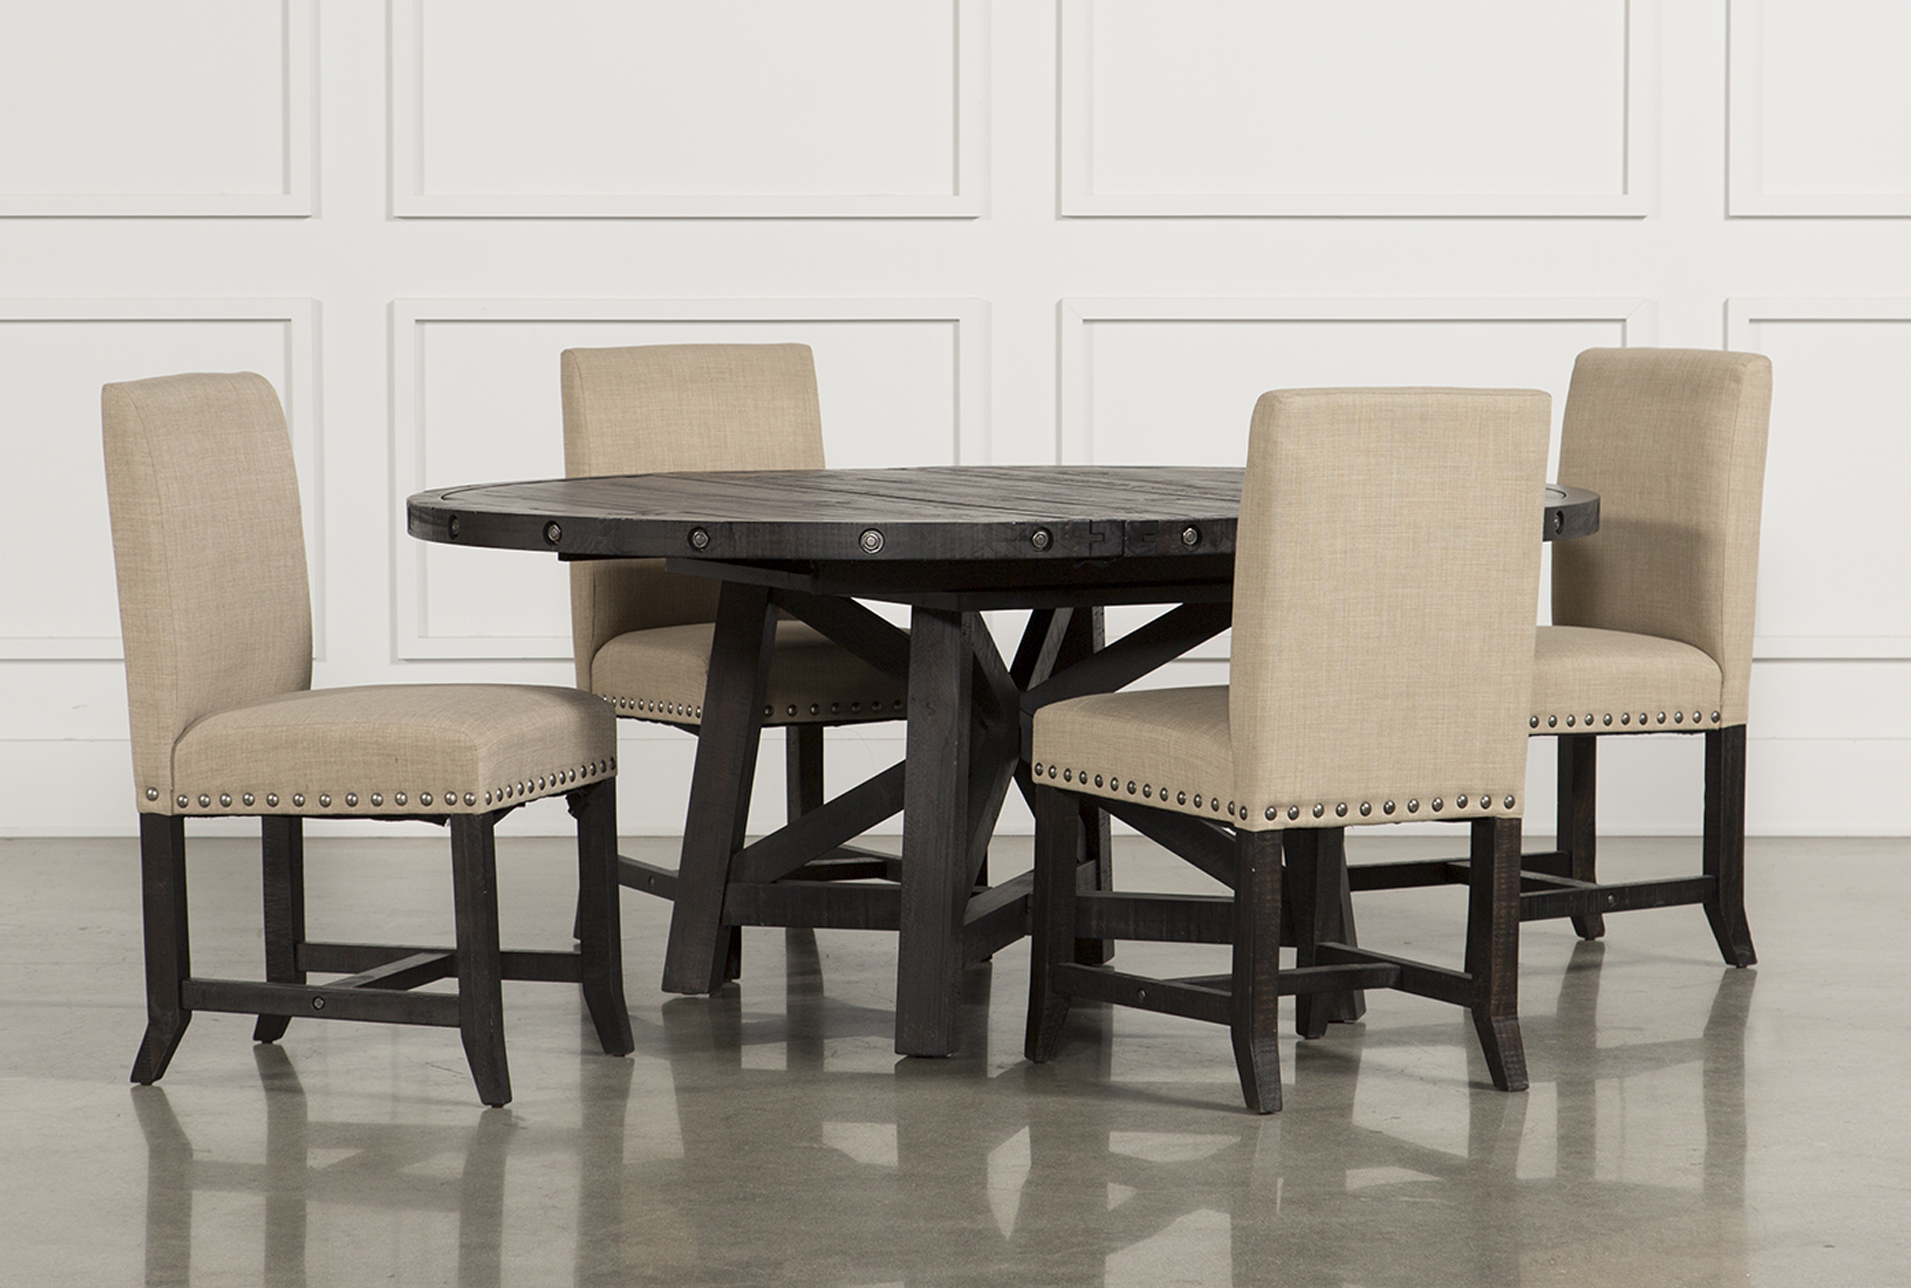 Jaxon 5 Piece Round Dining Set W/Upholstered Chairs (Qty: 1) Has Been  Successfully Added To Your Cart.